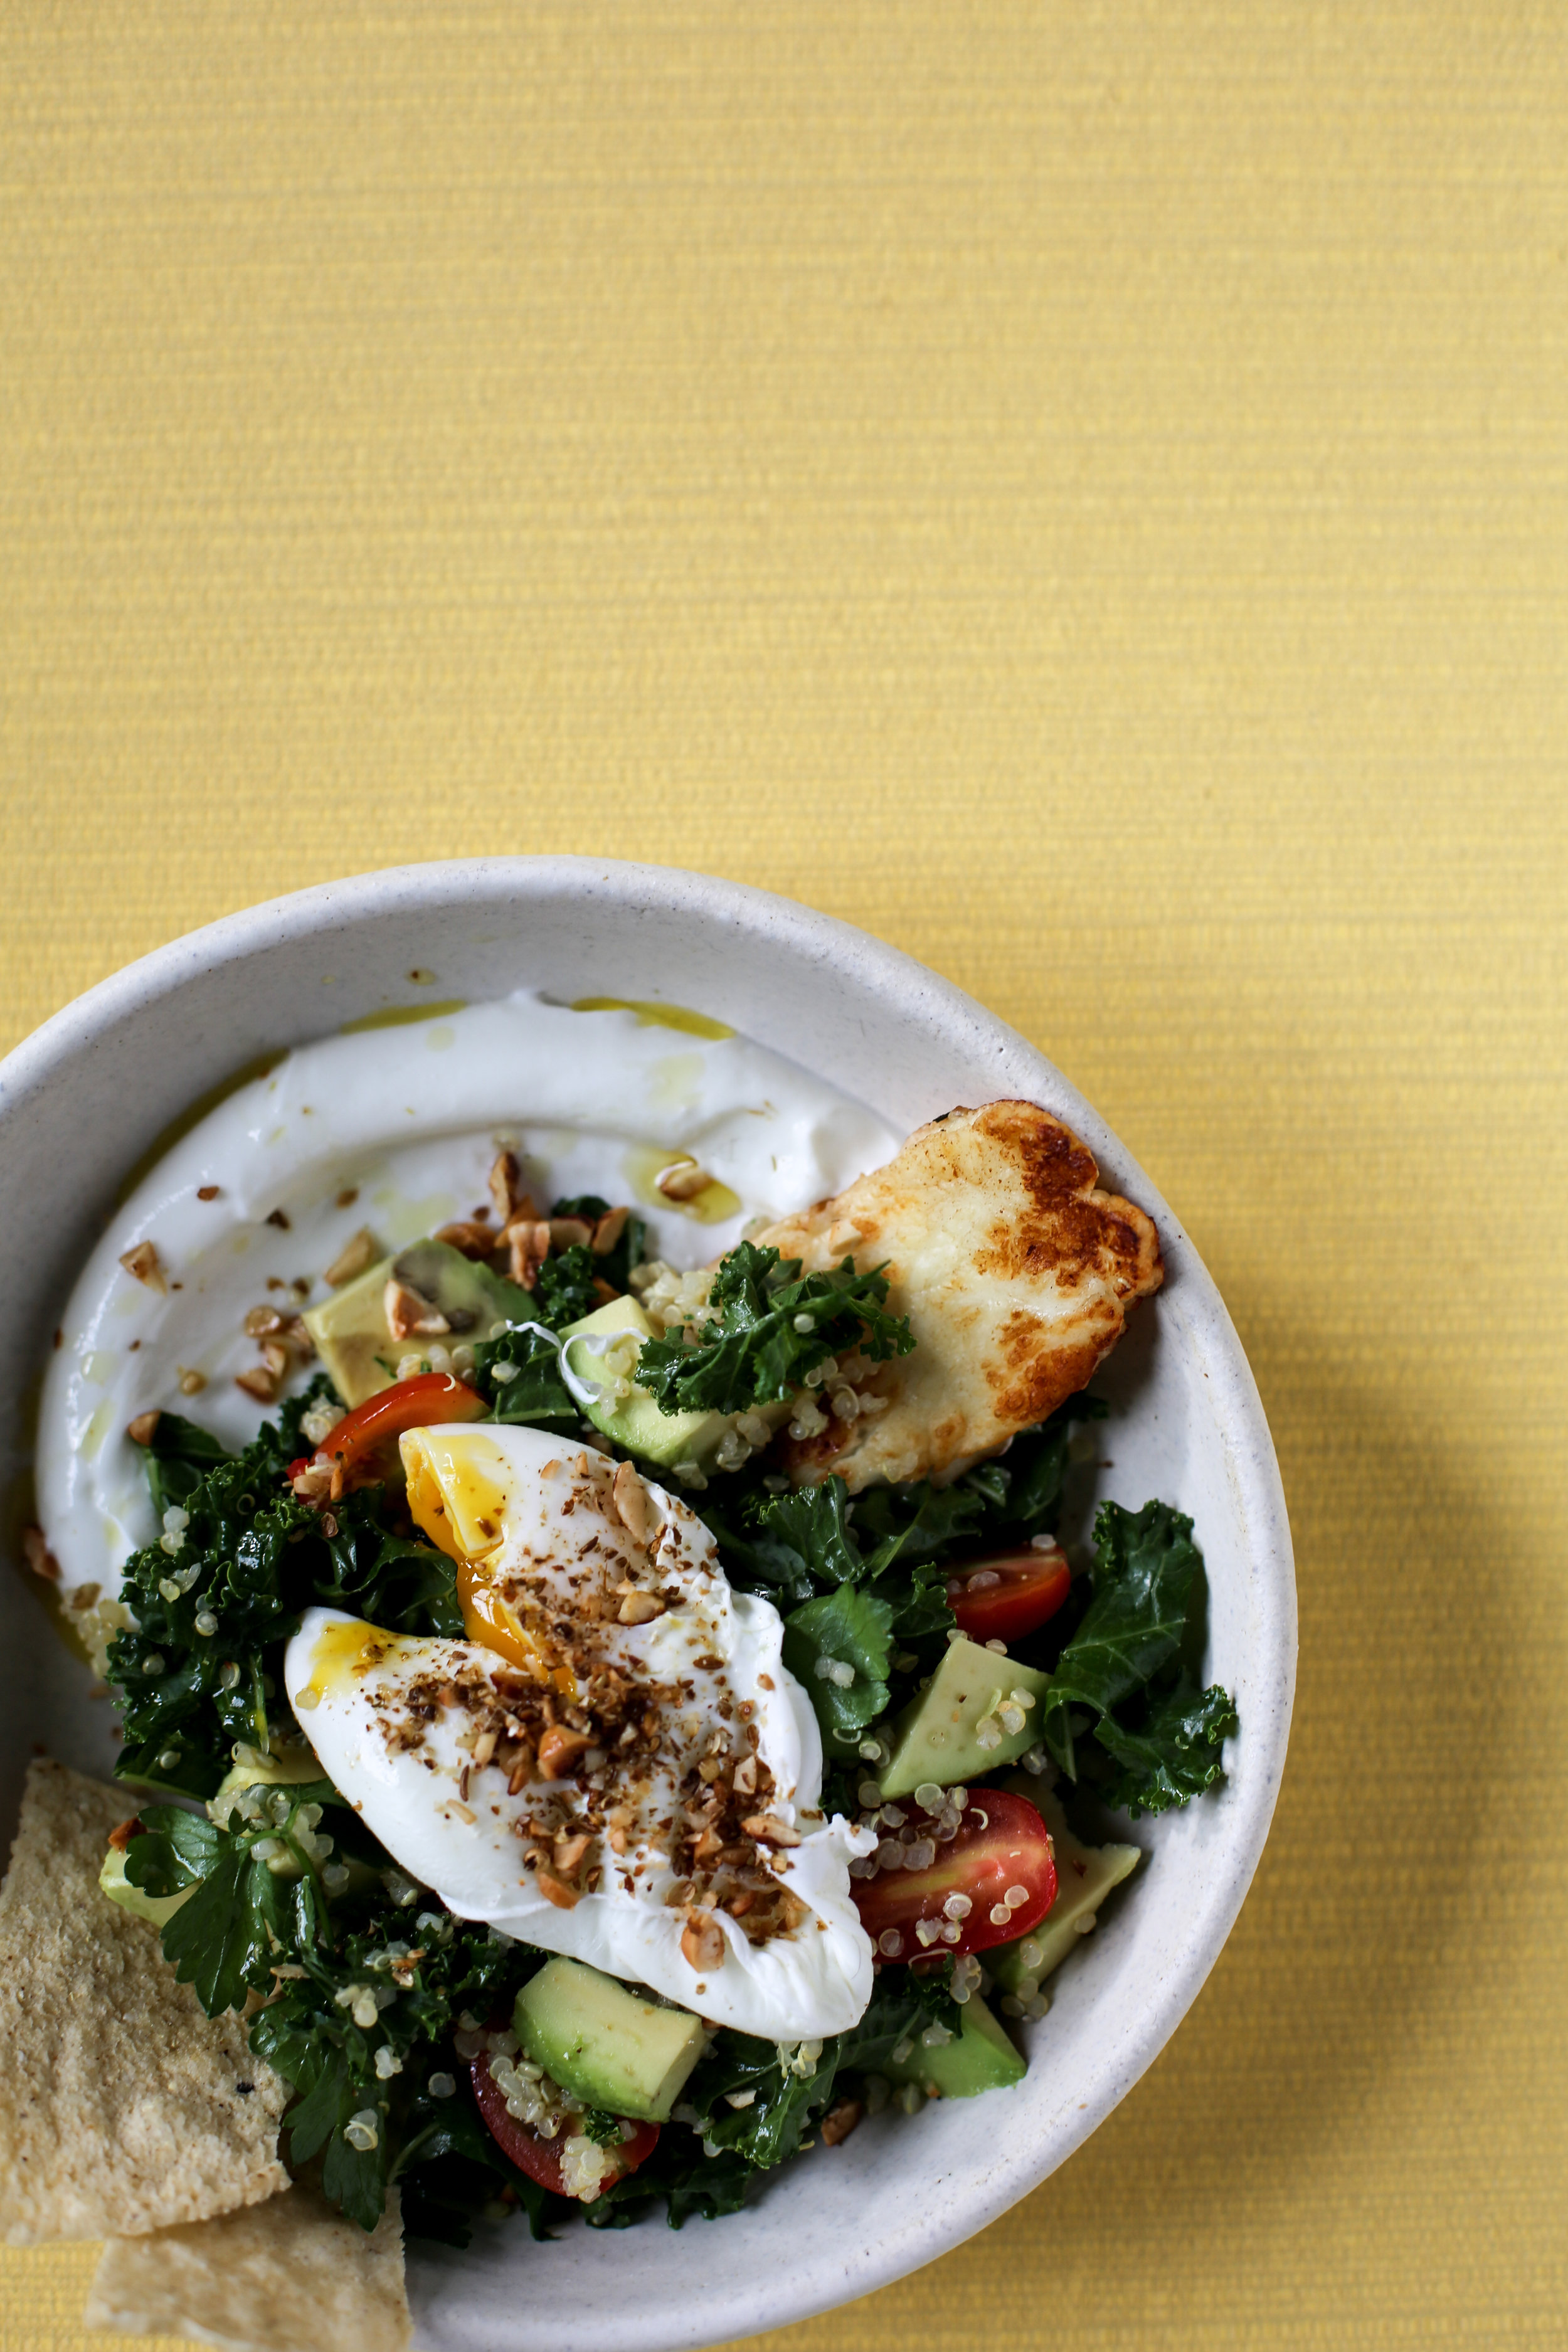 A breakfast bowl worth waking up for